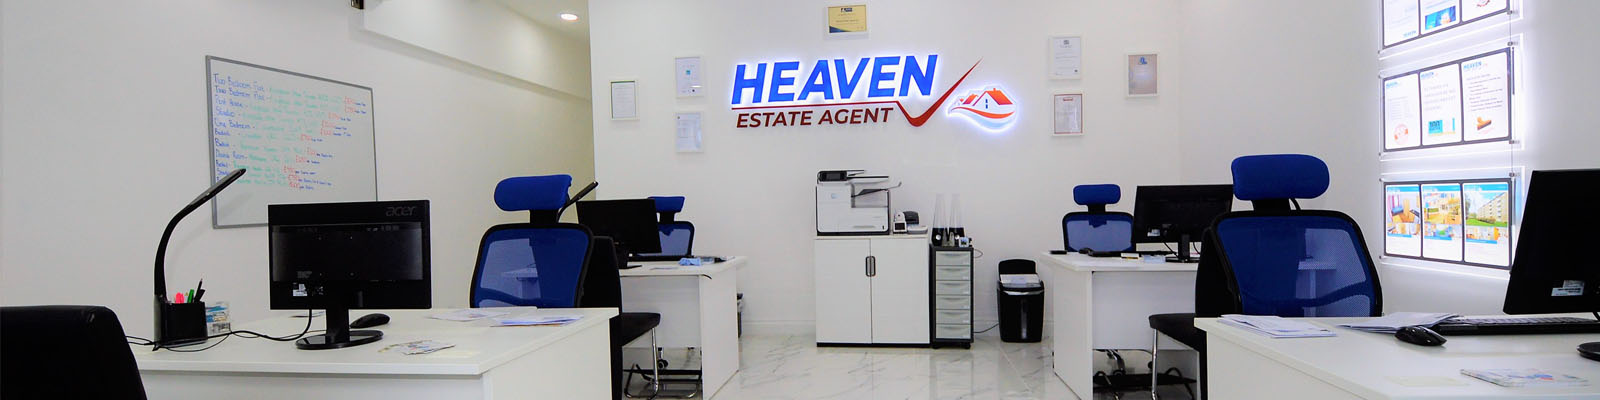 Free Property Valuation Onlineheaven Estate Agent Ltdfree